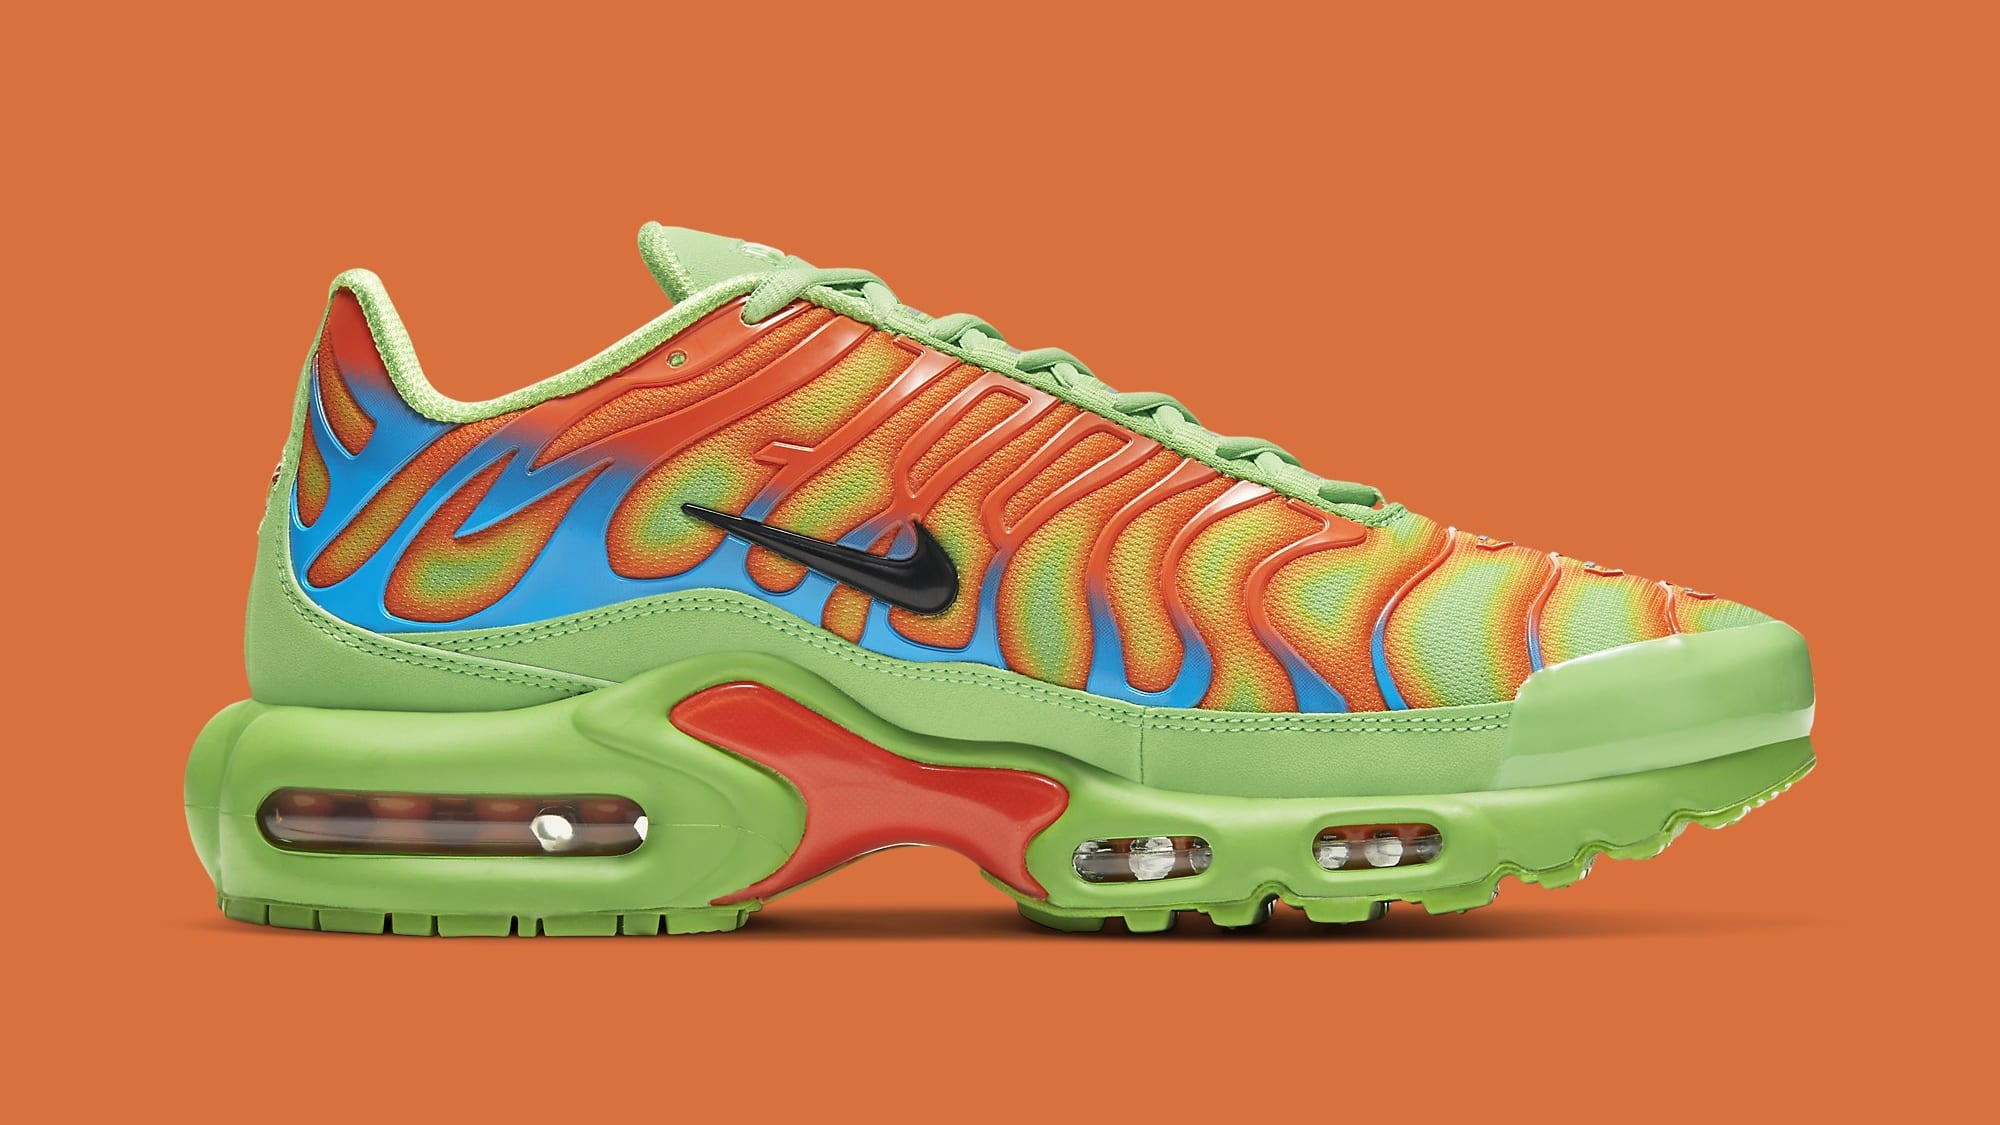 Supreme x Nike Air Max Plus Release Date October 2020 | Sole ...